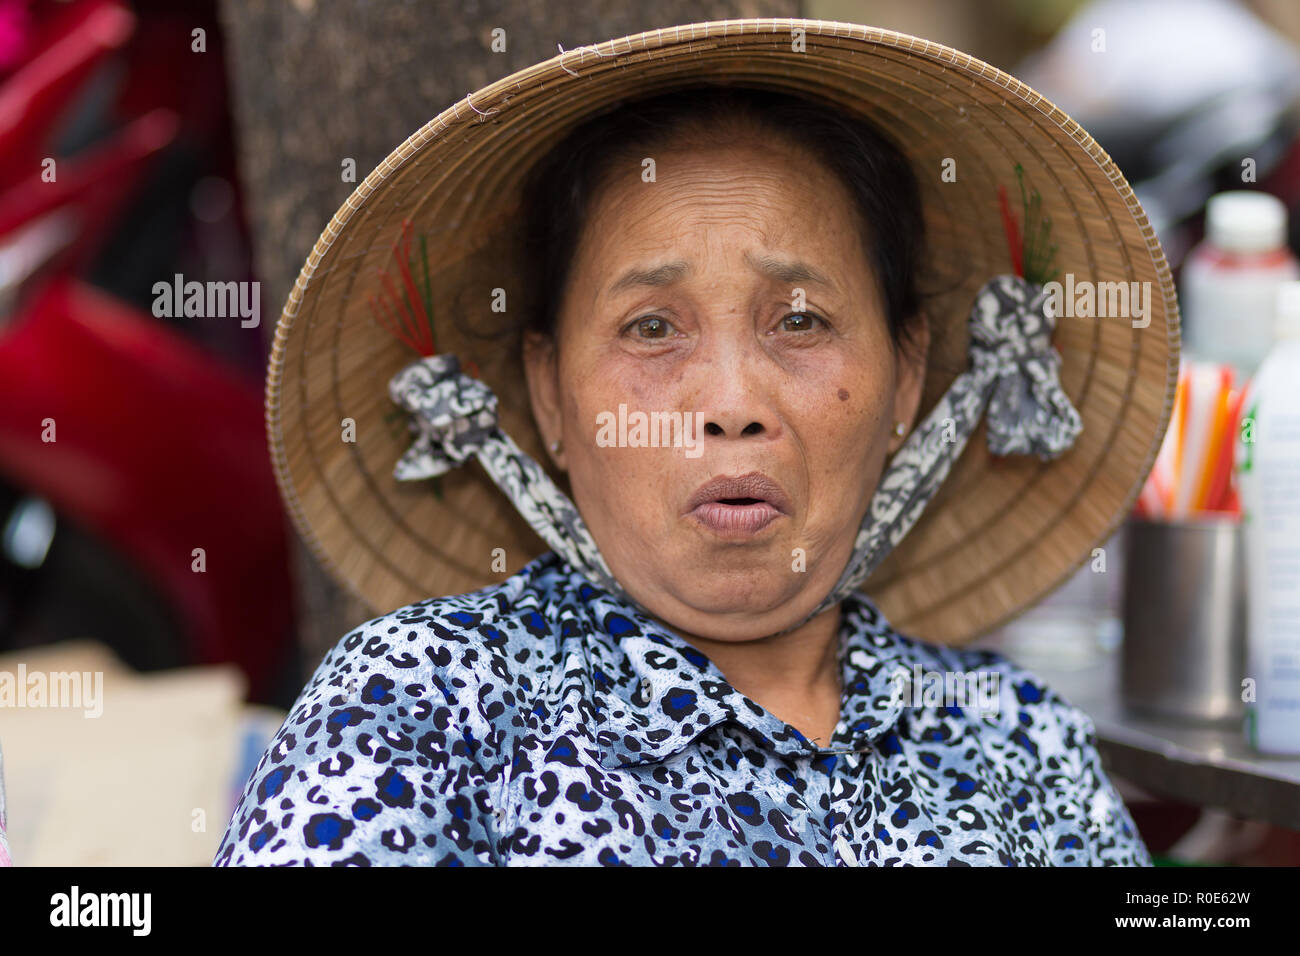 SAIGON, VIETNAM, FEBRUARY 26, 2015 : A funny senior woman is making a grimace int he streets of Saigon (Ho Chi Minh), Vietnam - Stock Image